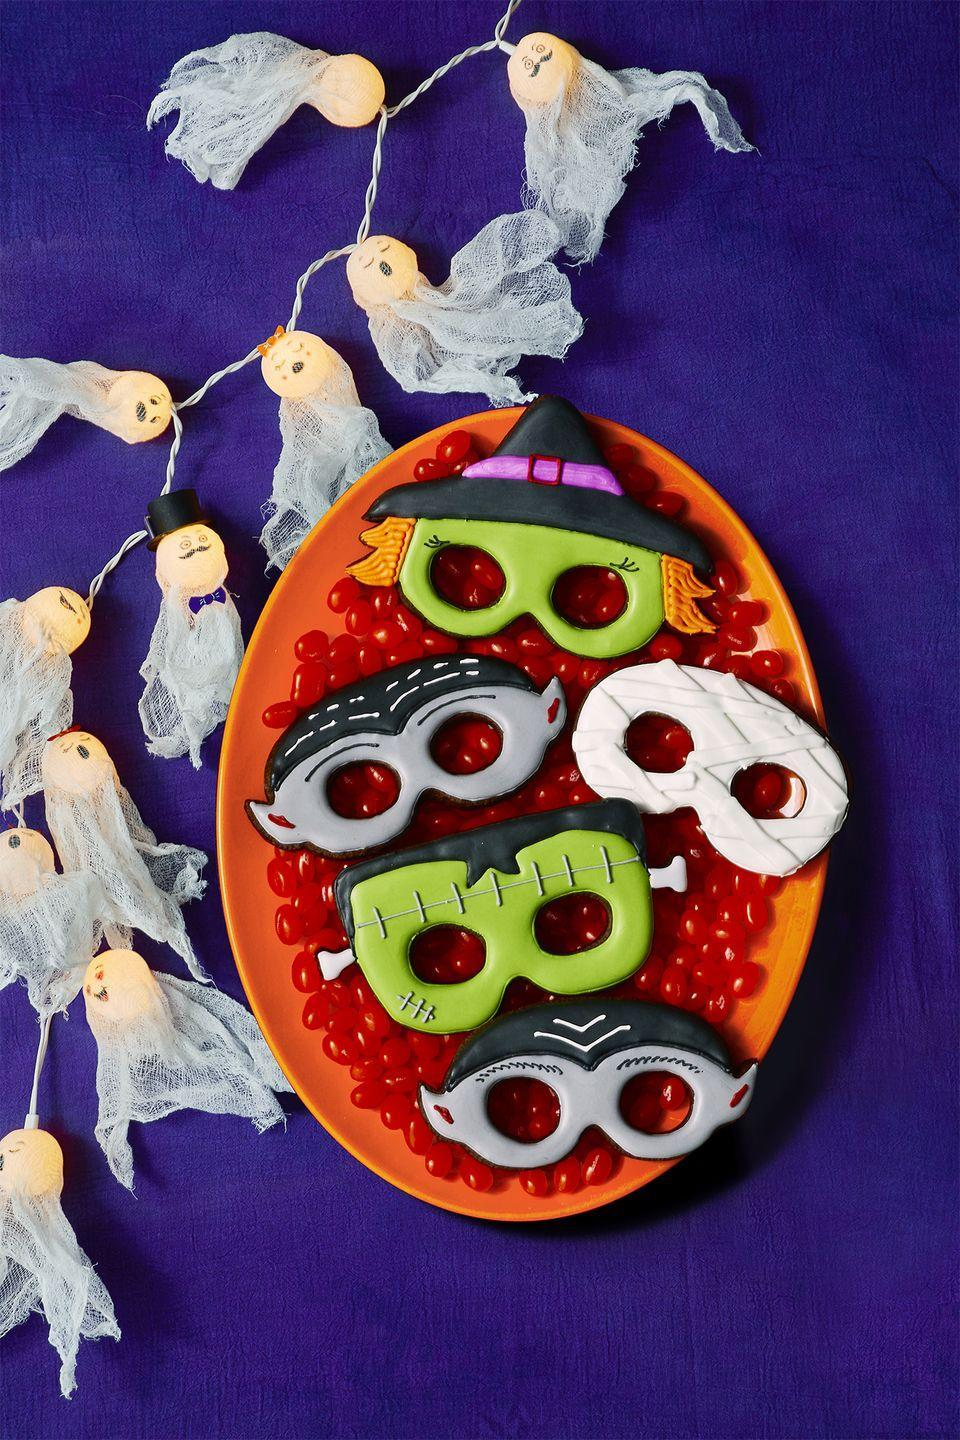 """<p>These are the ultimate Halloween sugar cookies: Whip up a batch of sugar cookie dough, then use a <a href=""""https://members.easypeasyandfun.com/downloads/halloween-printable-masks/"""" rel=""""nofollow noopener"""" target=""""_blank"""" data-ylk=""""slk:mask template"""" class=""""link rapid-noclick-resp"""">mask template</a> to carve out the shape of a witch, vampire, mummy, and Frankenstein.</p><p><a href=""""https://www.womansday.com/food-recipes/food-drinks/recipes/a12008/basic-sugar-cookies-recipe-wdy1212/"""" rel=""""nofollow noopener"""" target=""""_blank"""" data-ylk=""""slk:Get the Basic Sugar Cookies recipe."""" class=""""link rapid-noclick-resp""""><strong><em>Get the Basic Sugar Cookies recipe.</em></strong></a></p>"""